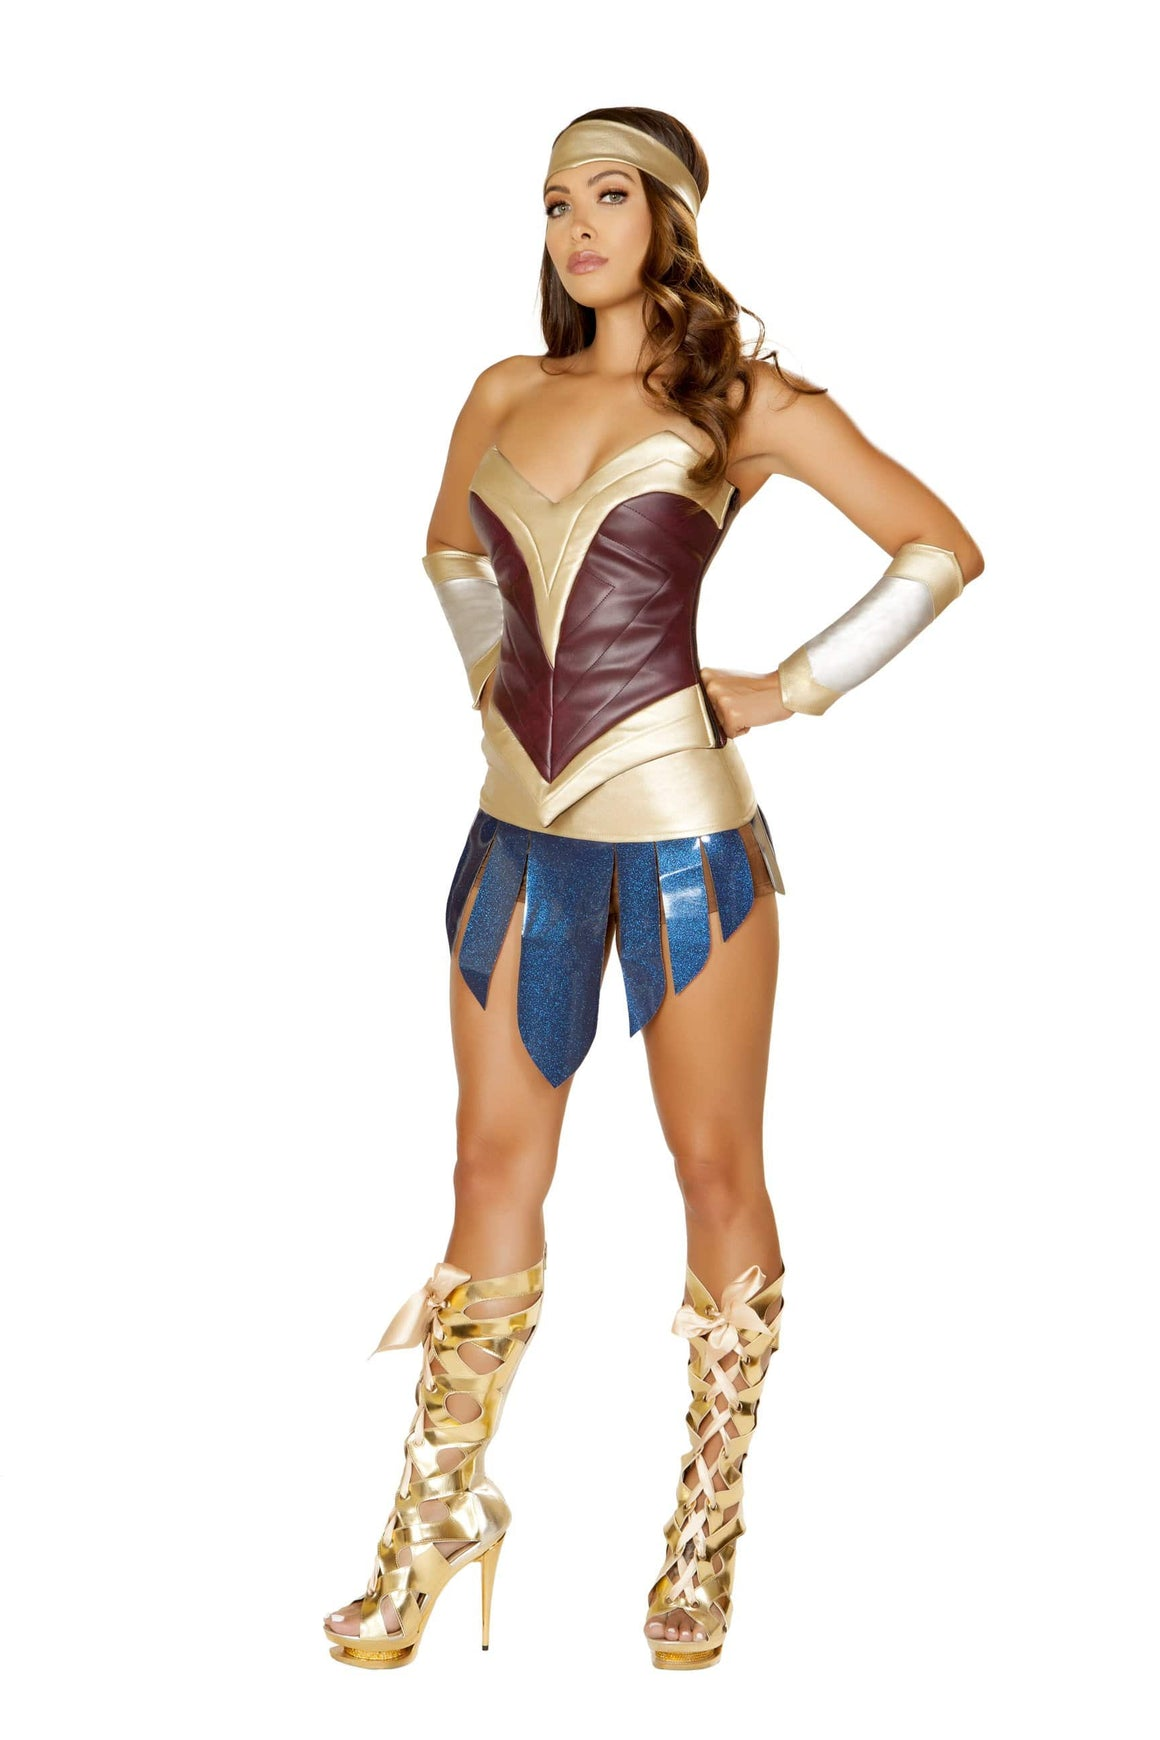 Roma Small / Multicolor 4pc American Heroine SHC-4850-S-R Apparel & Accessories > Costumes & Accessories > Costumes